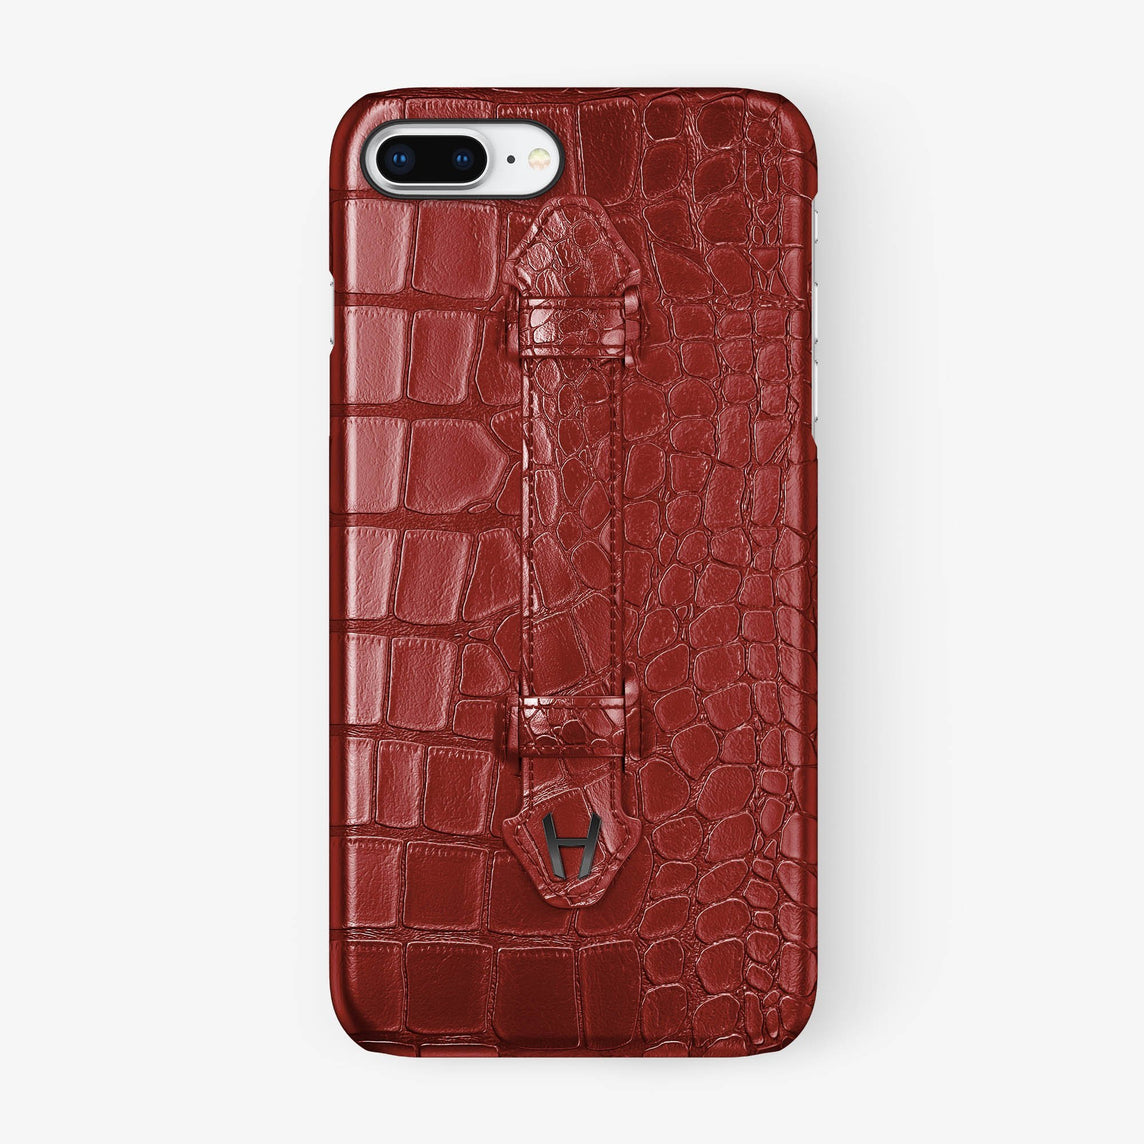 Red Alligator iPhone Finger Case for iPhone 7/8 Plus finishing black - Hadoro Luxury Cases